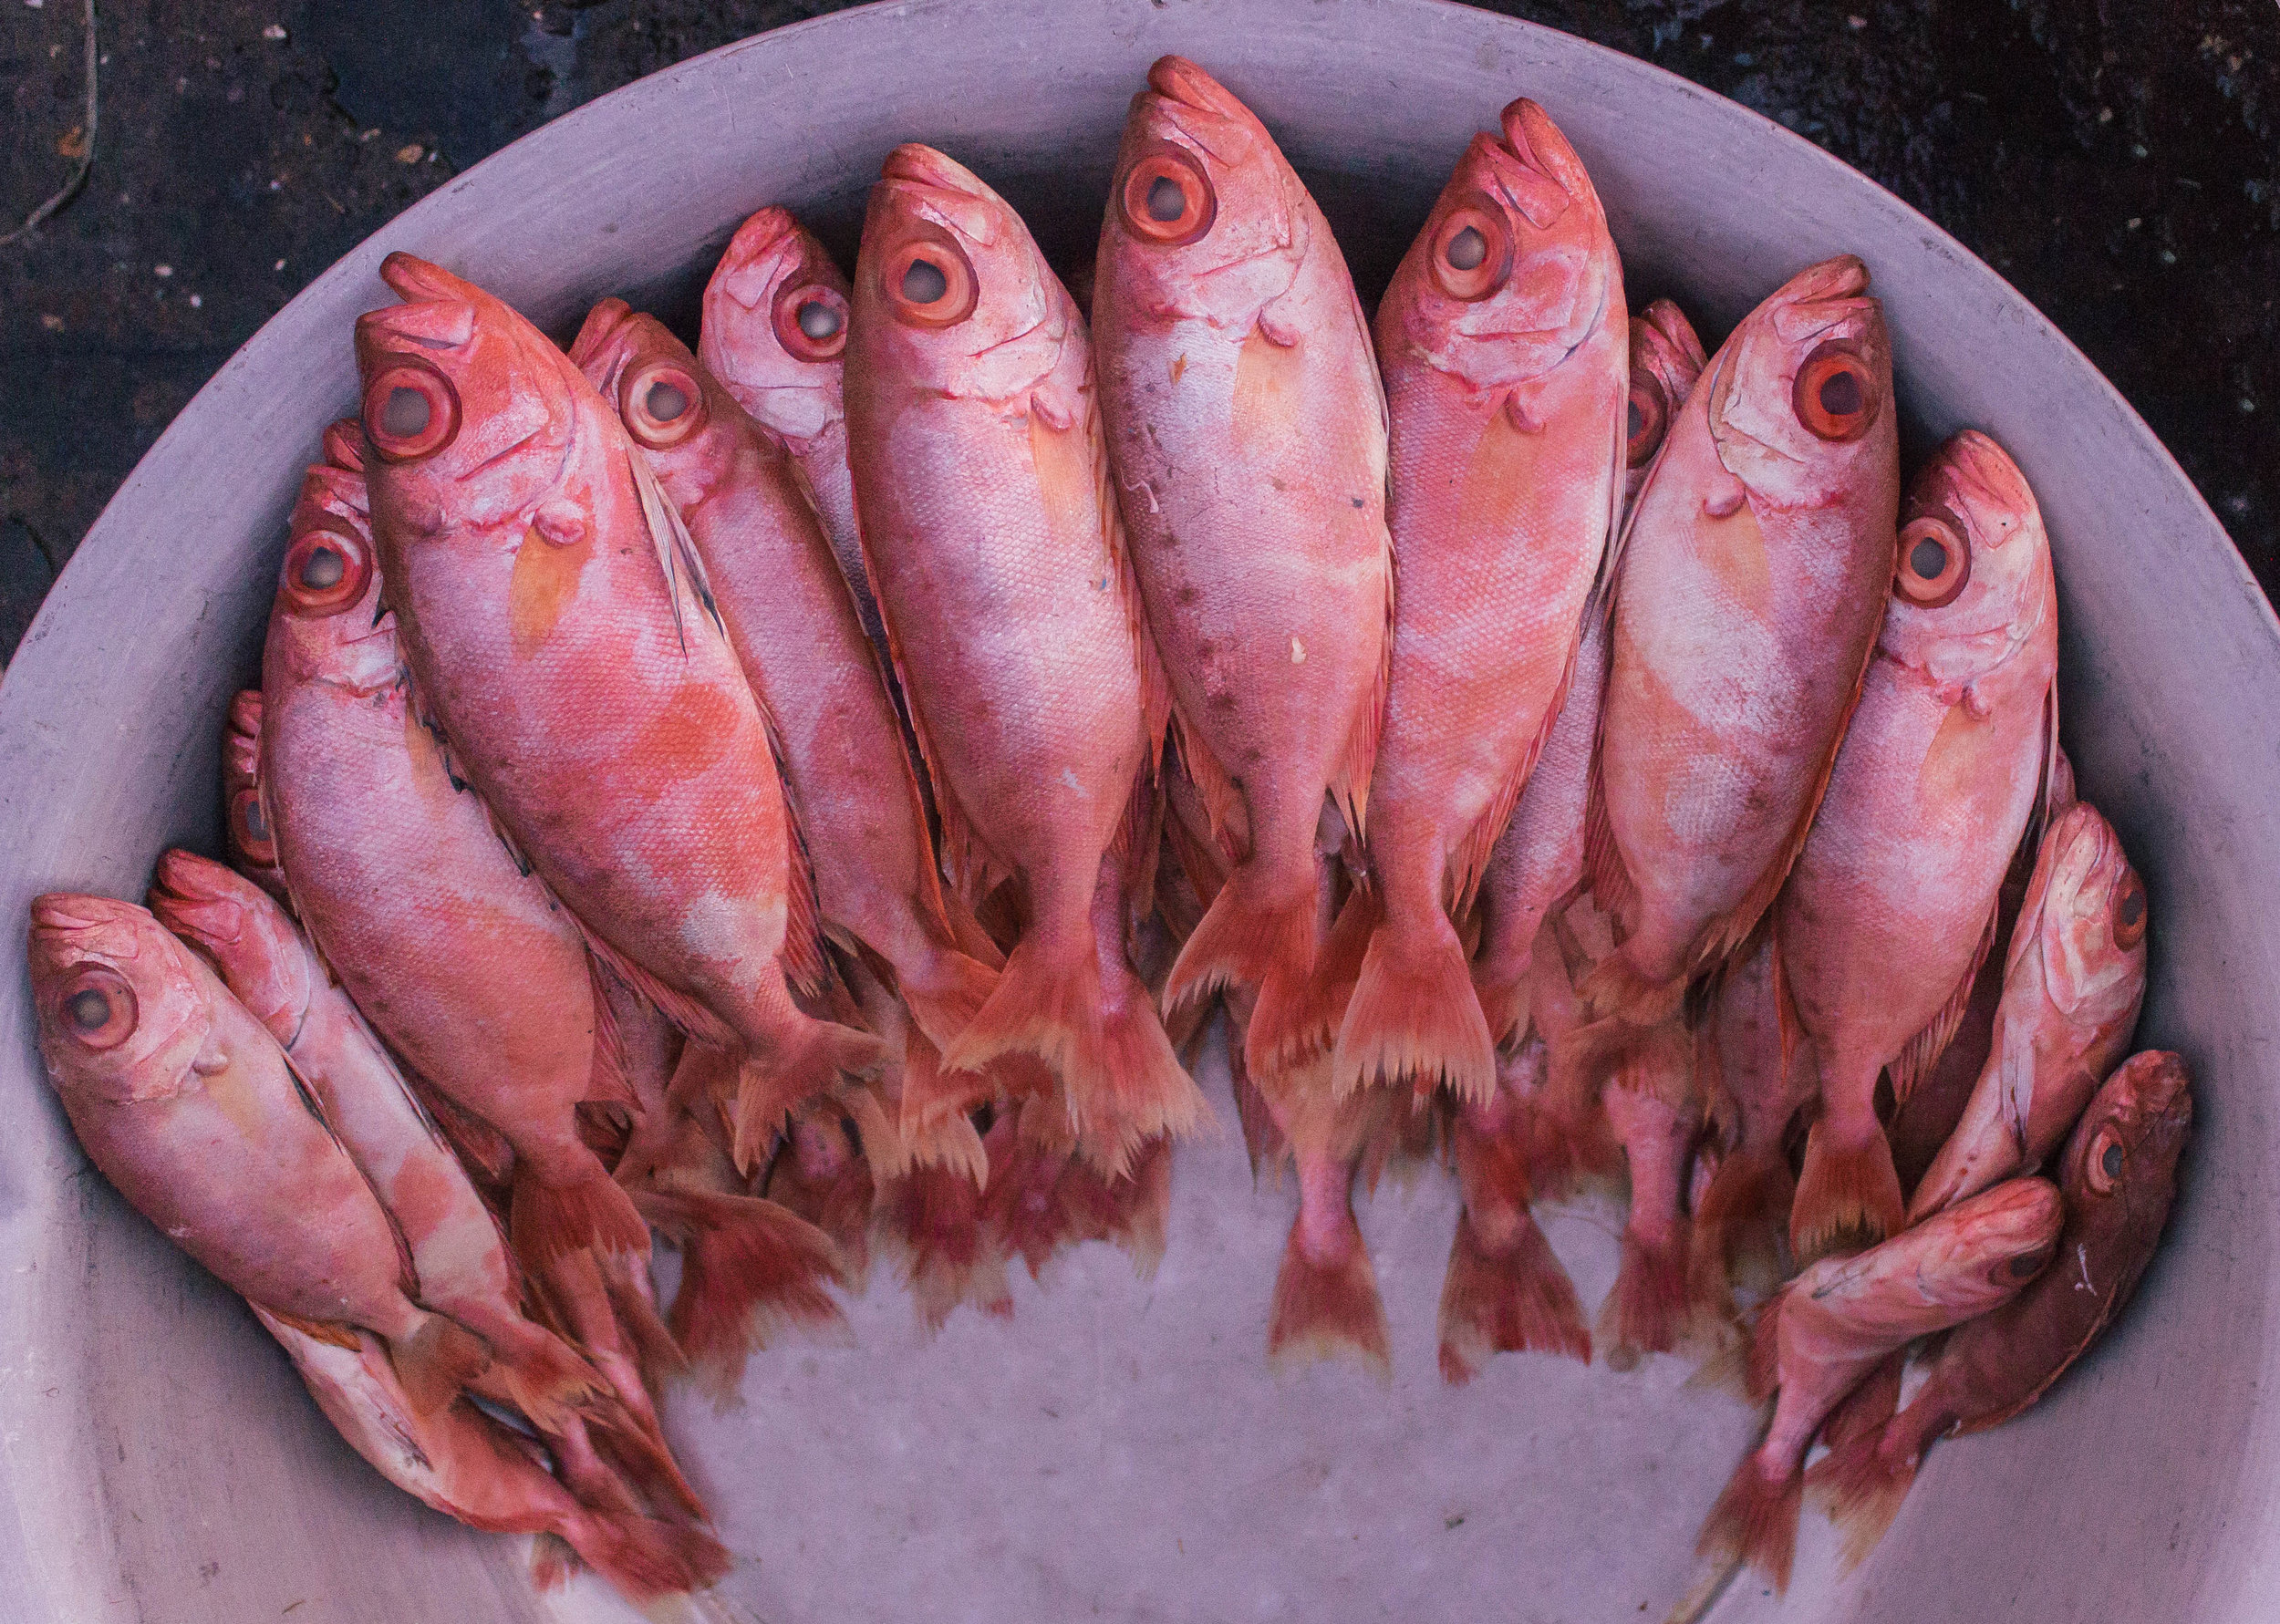 The Indian red snapper, known locally as tambusa, is mostly exported. But steamed or used in a curry, it is known to be superior to its American counterpart.